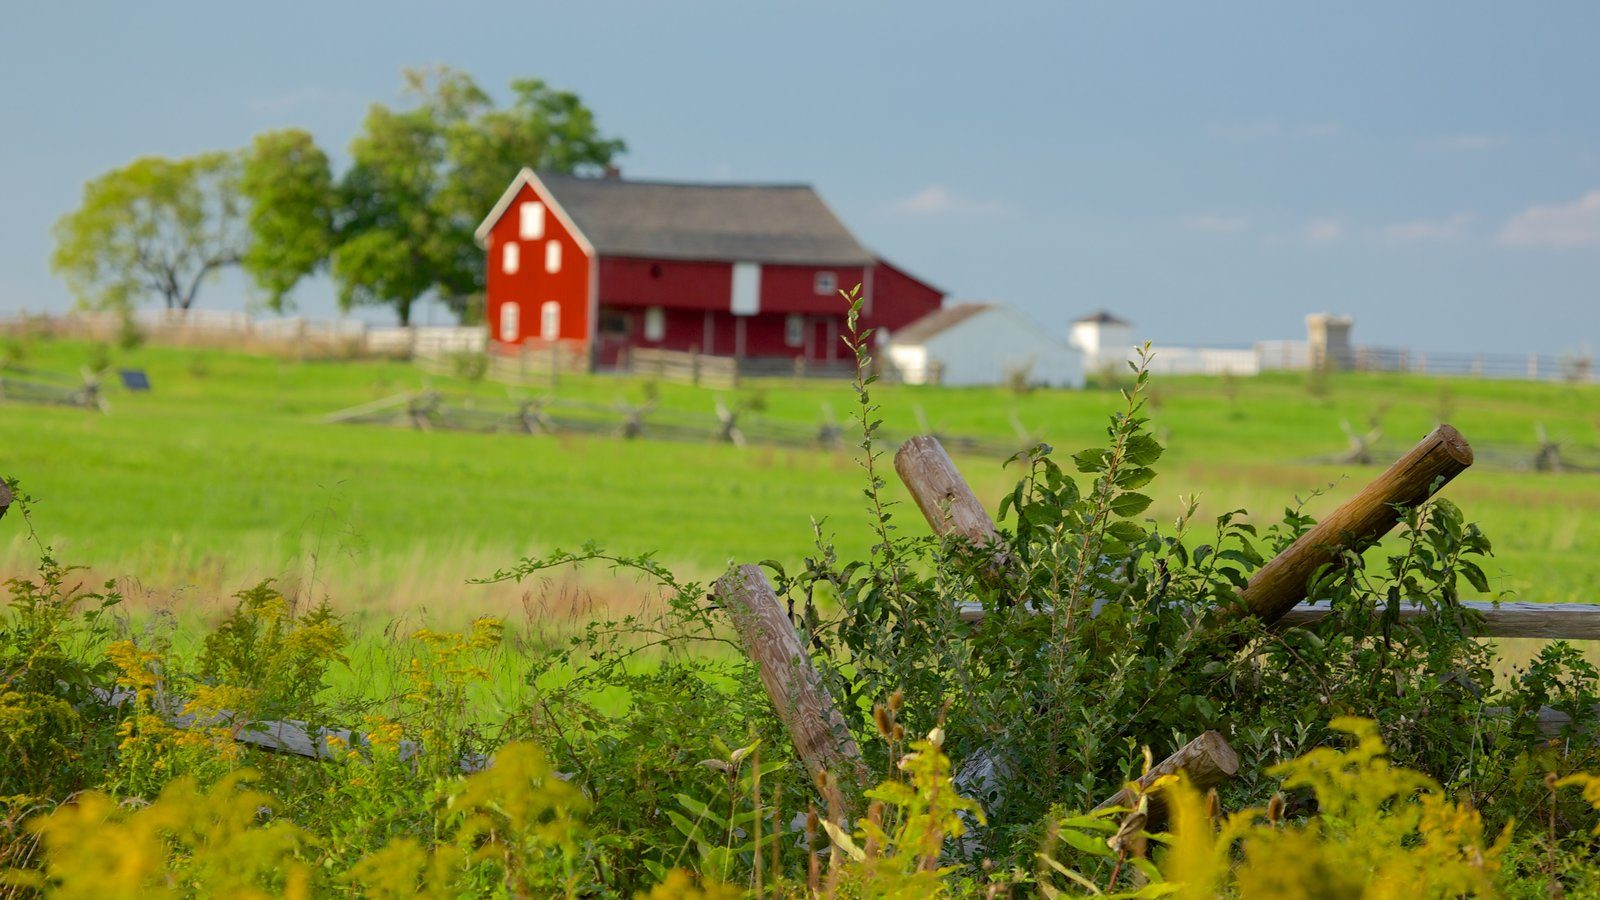 Gettysburg National Military Park showing tranquil scenes and landscape views